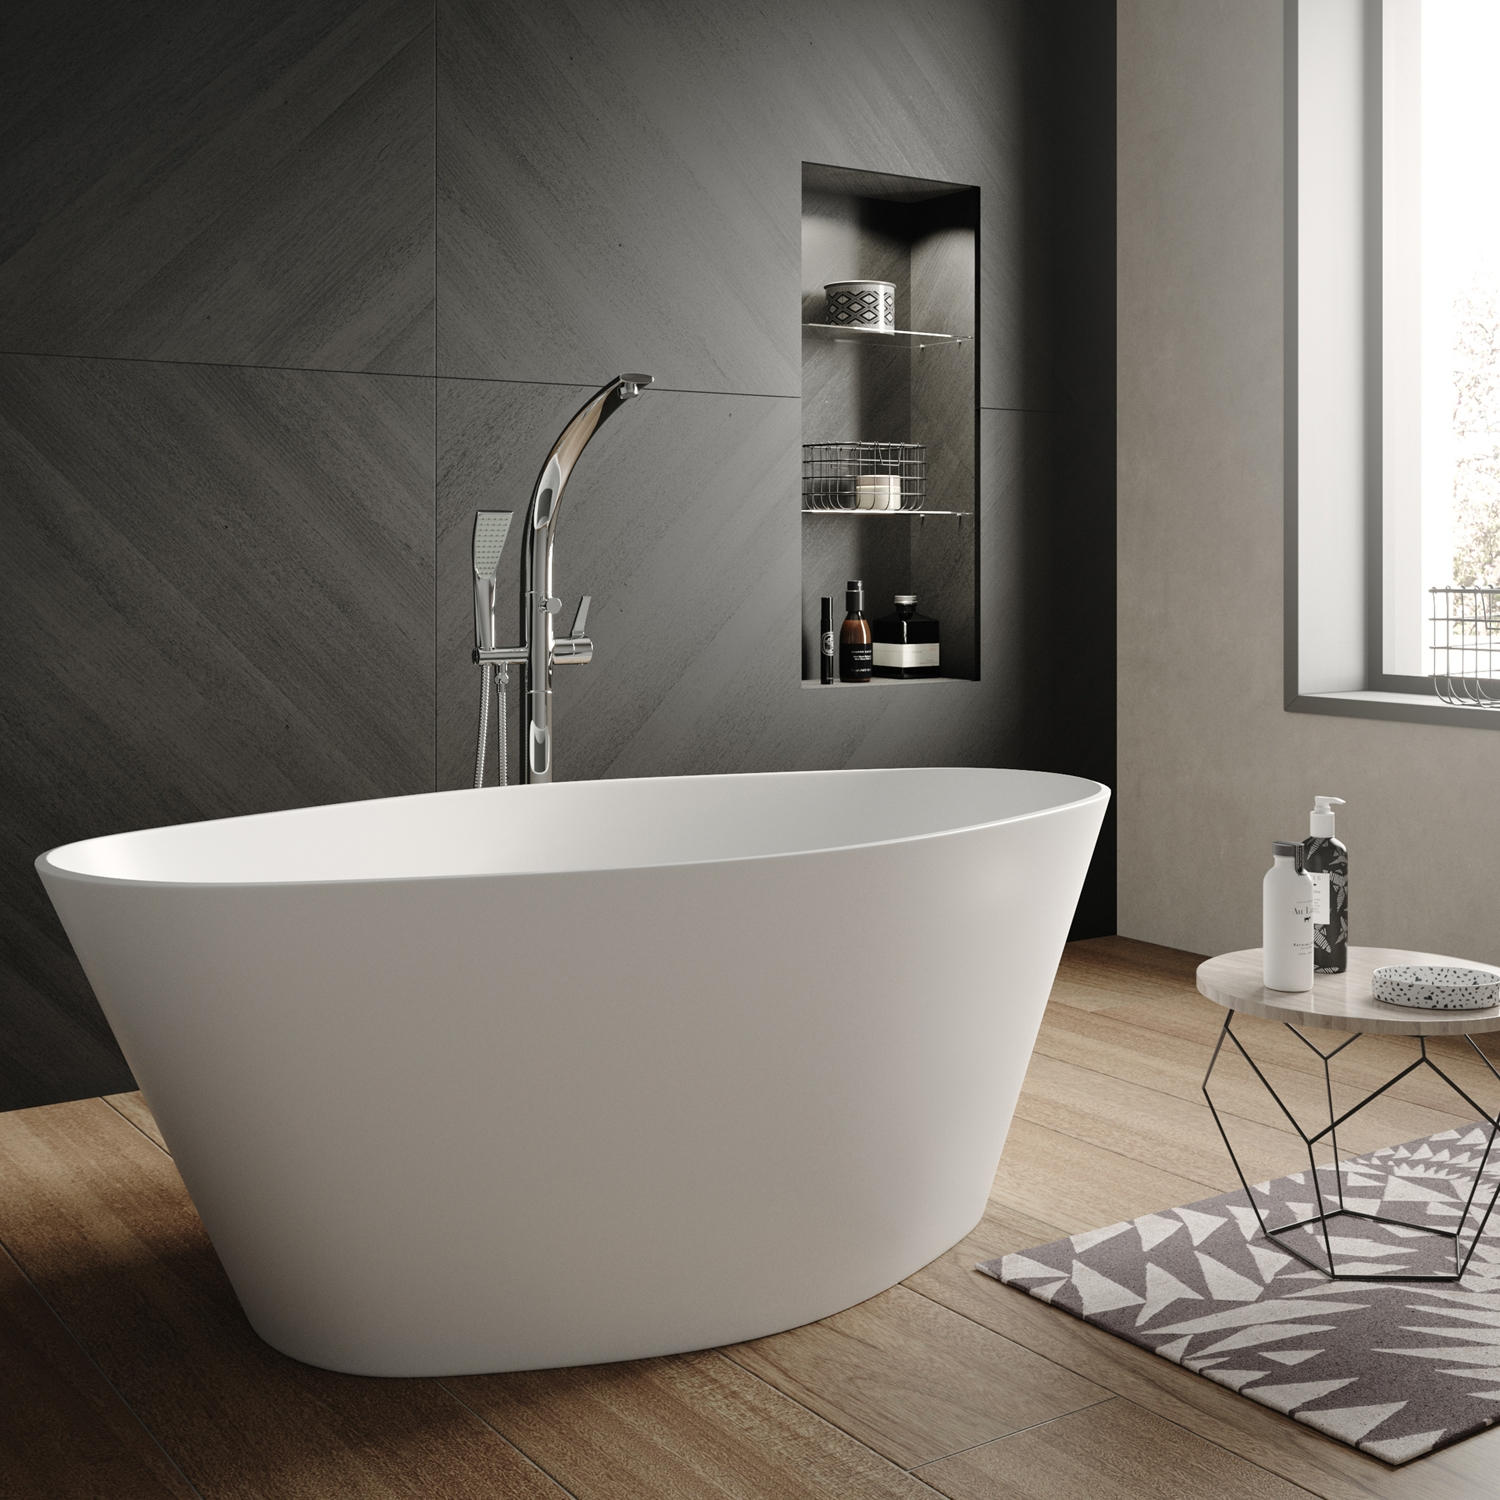 Hudson Reed Rose L1510 x W760mm Oval Freestanding Bath NBB002(2).jpg